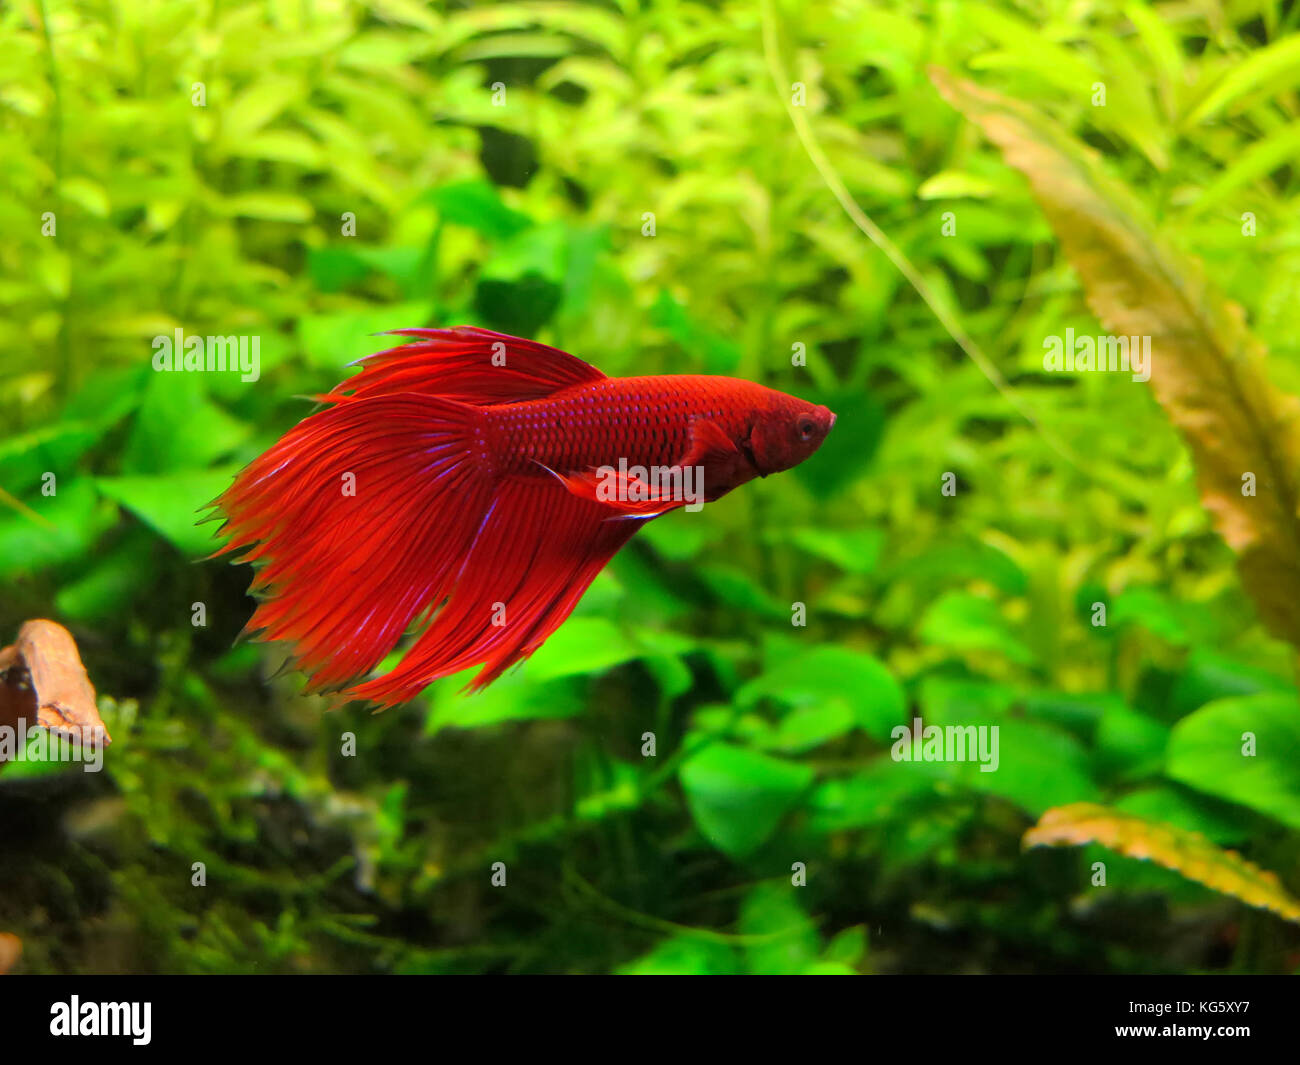 Freshwater Underwater Scene Freshwater Fish Stock Photos ...